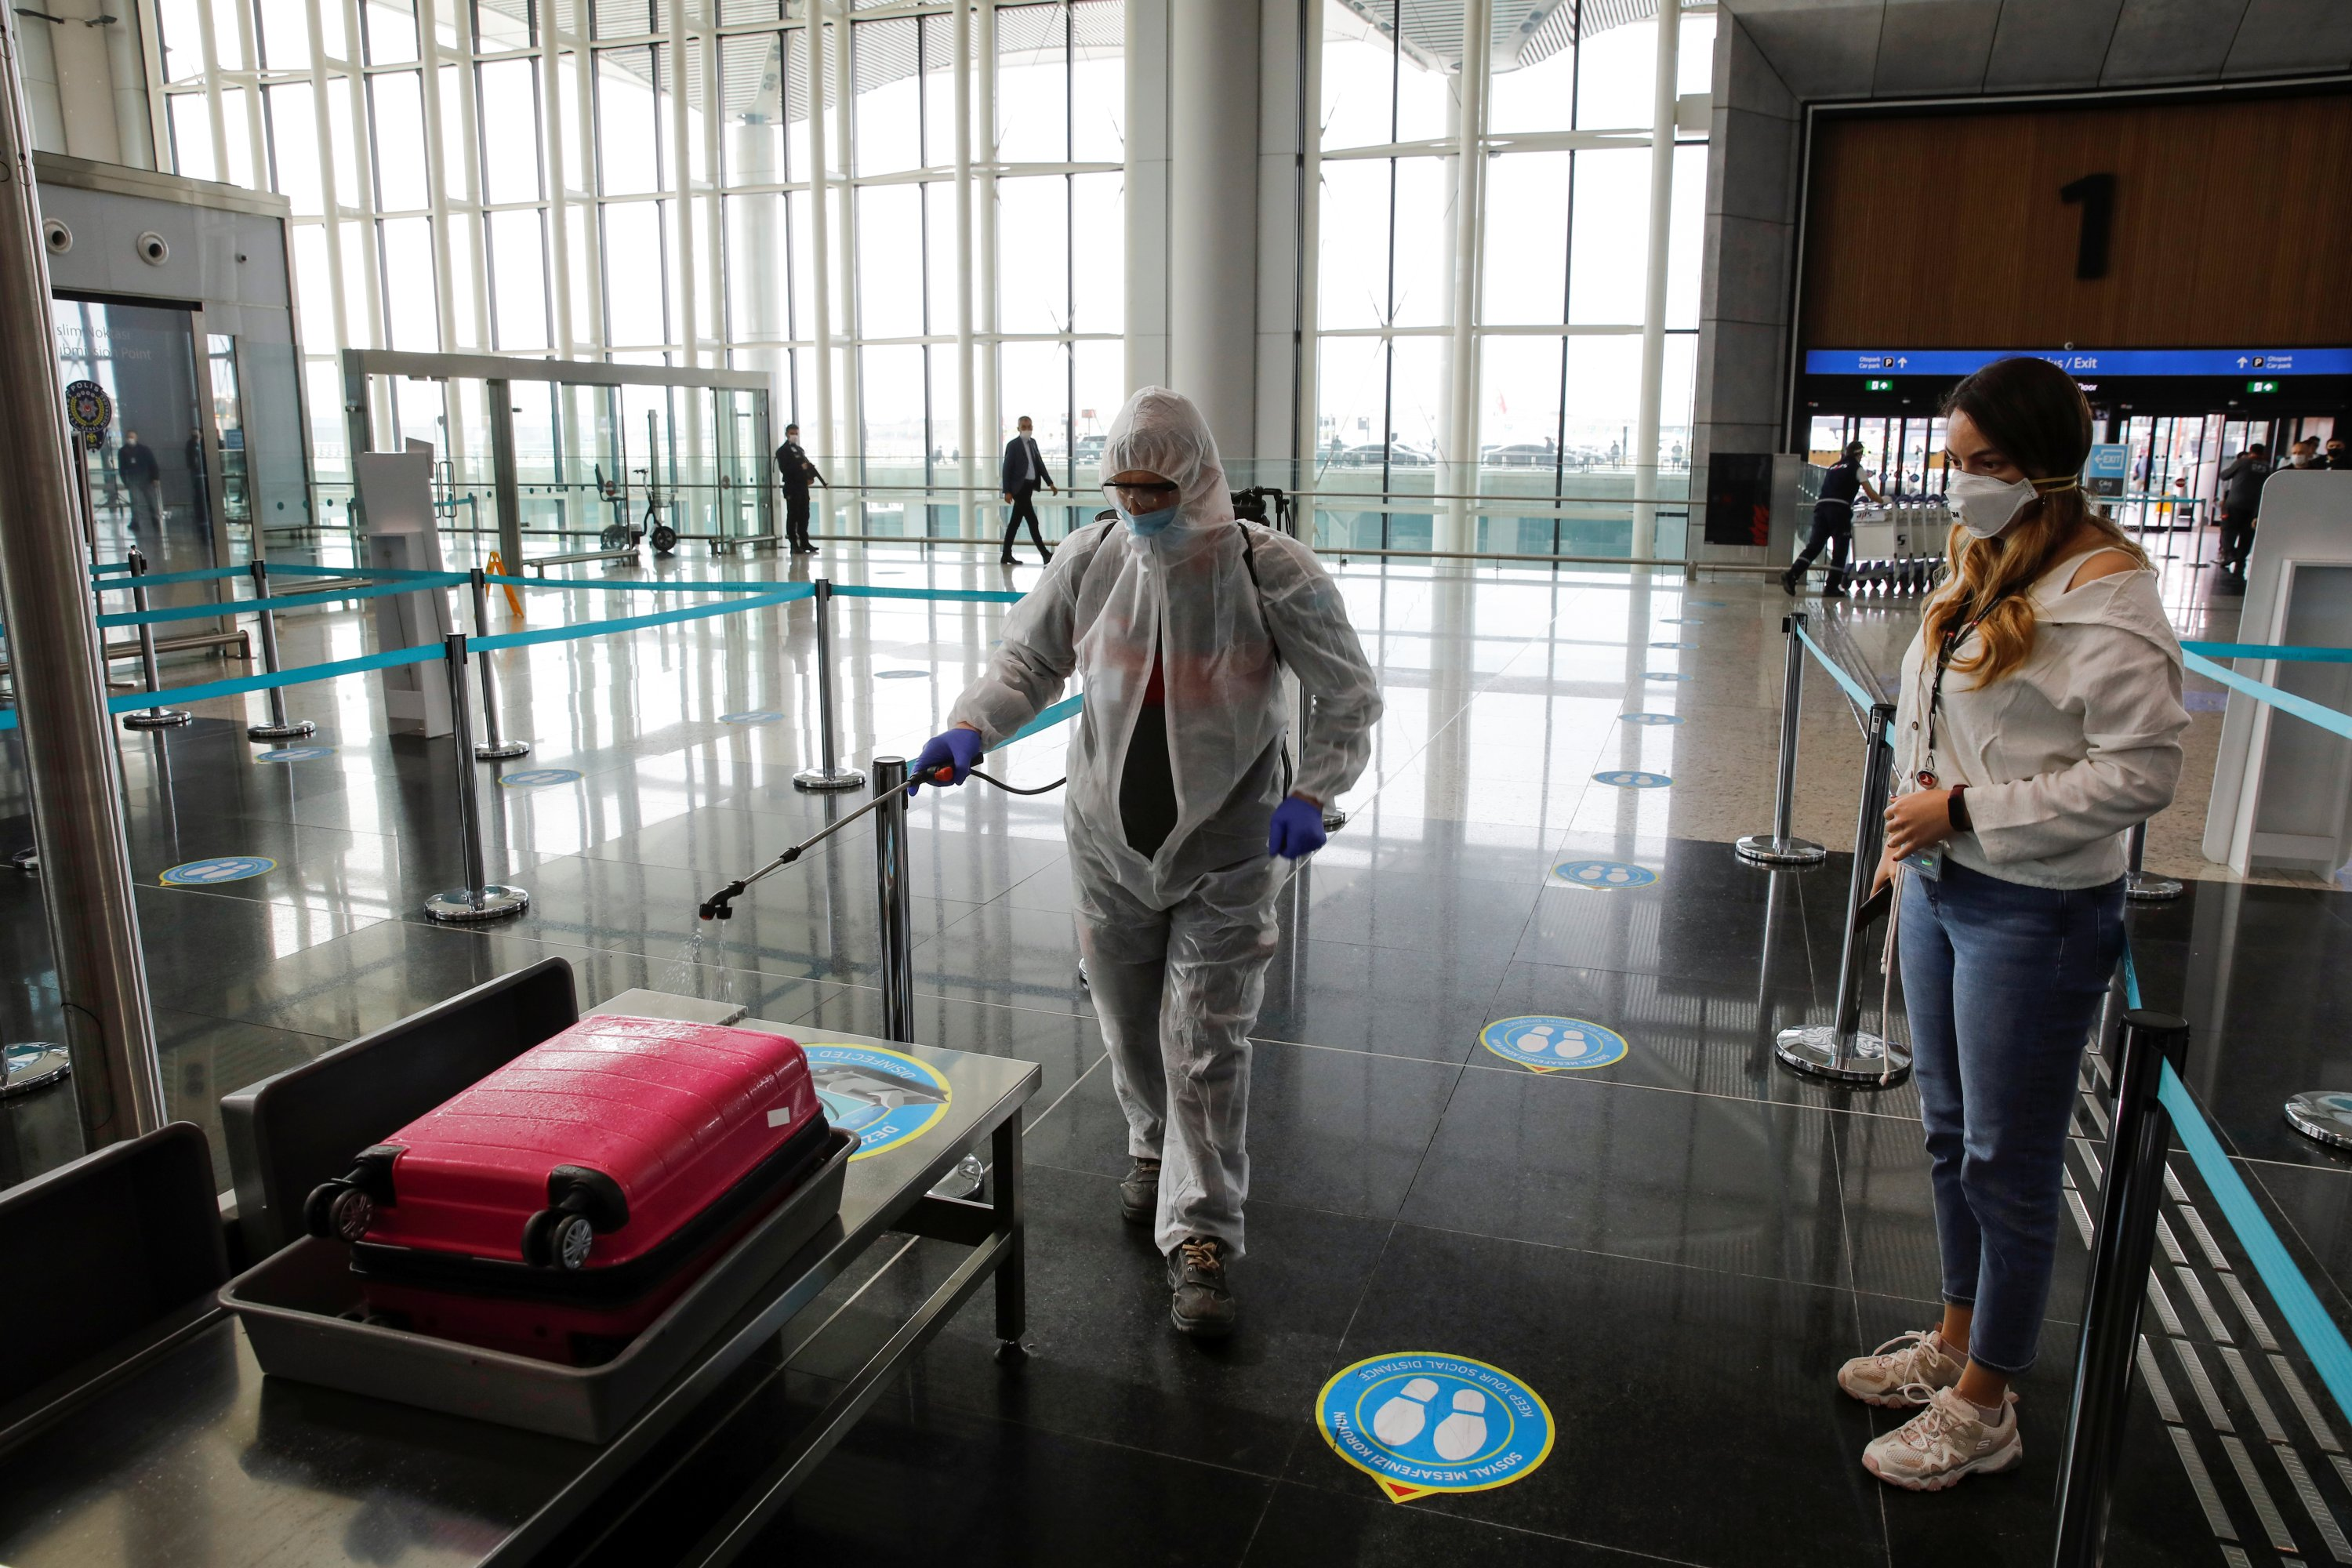 An employee wearing a protective suit disinfects luggage at the Istanbul Airport, June 1, 2020. (REUTERS Photo)